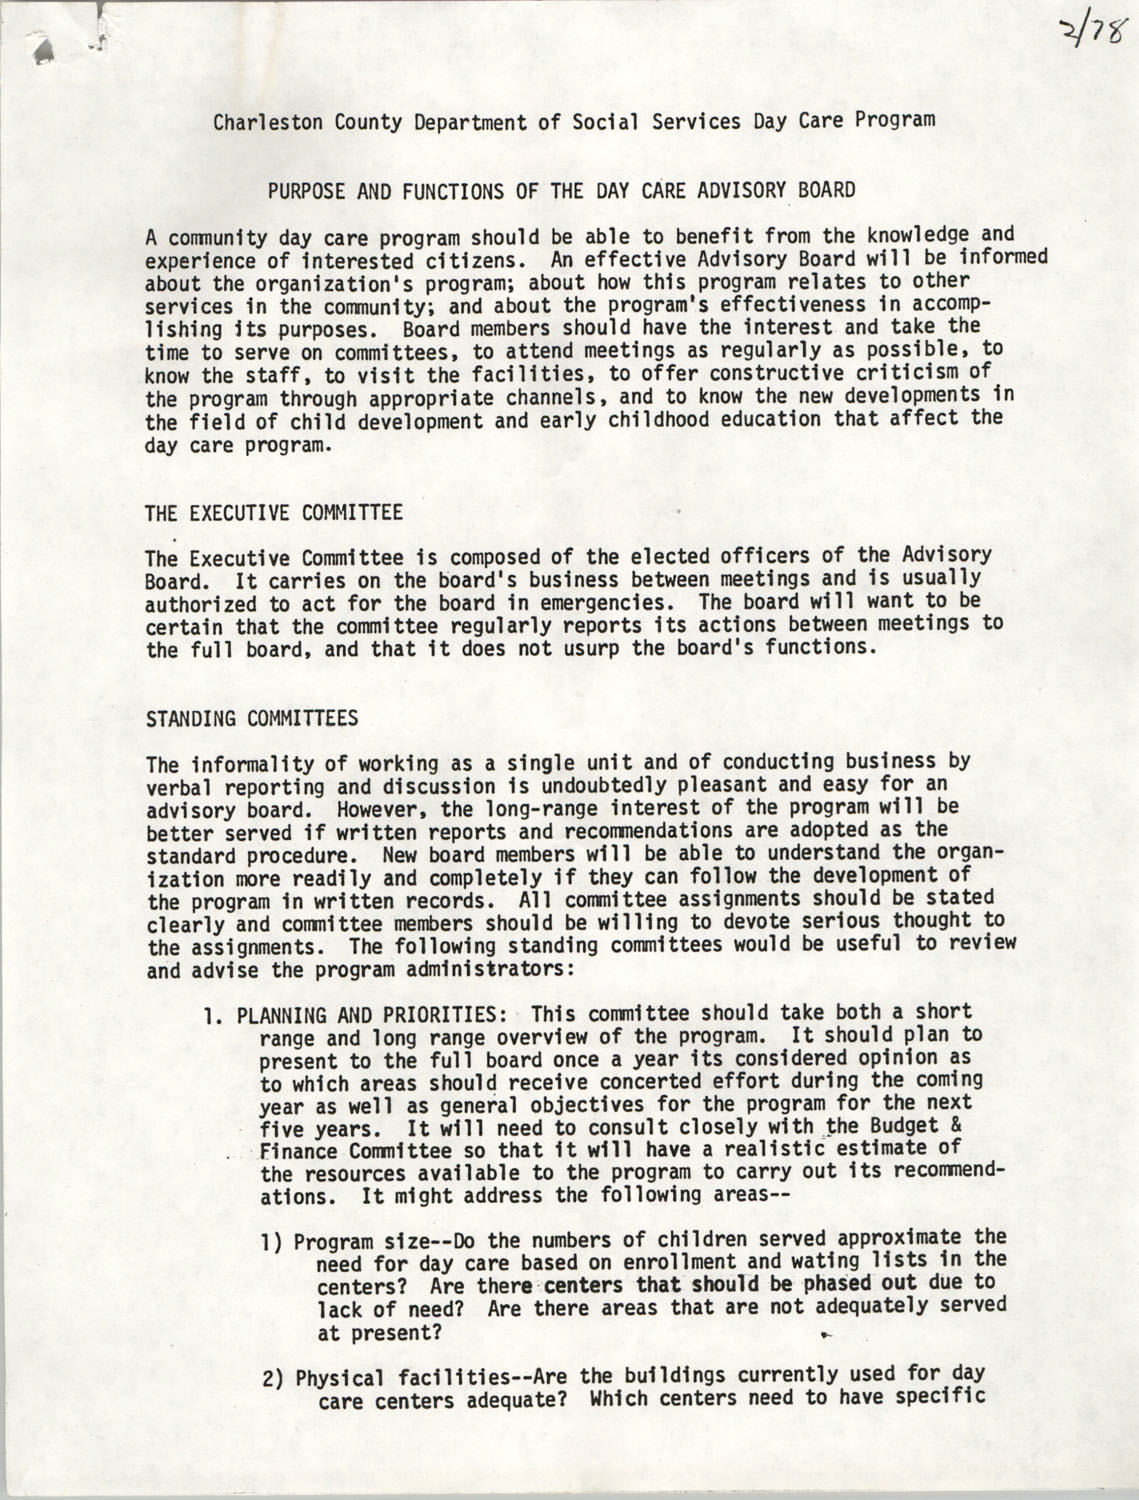 Purpose and Functions of the Day Care Advisory Board, Charleston County Department of Social Services Day Care Program, February 1978